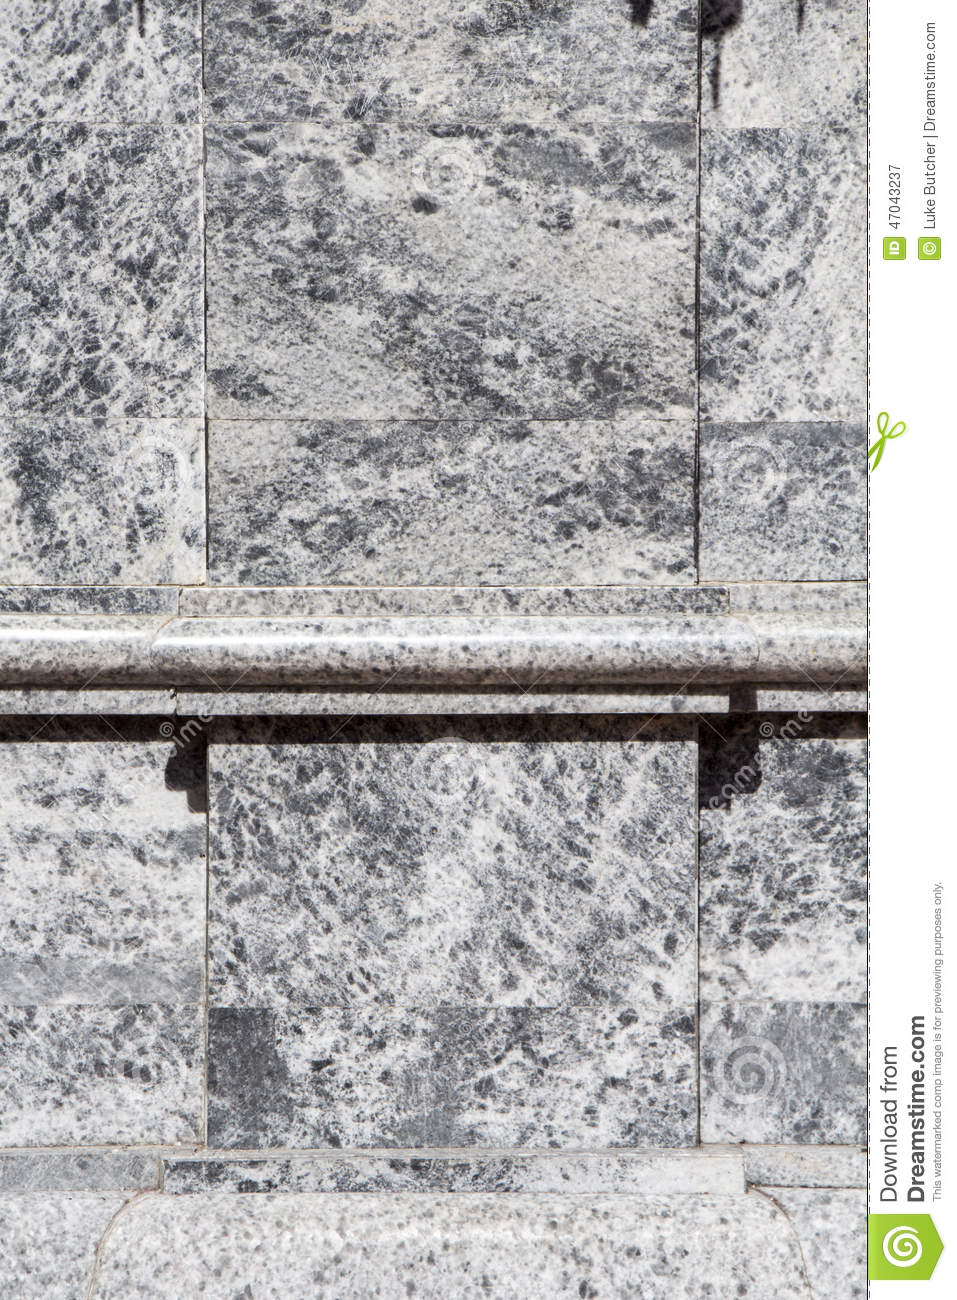 Marble walls stock image image of detail outdoor design for Time saver details for exterior wall design